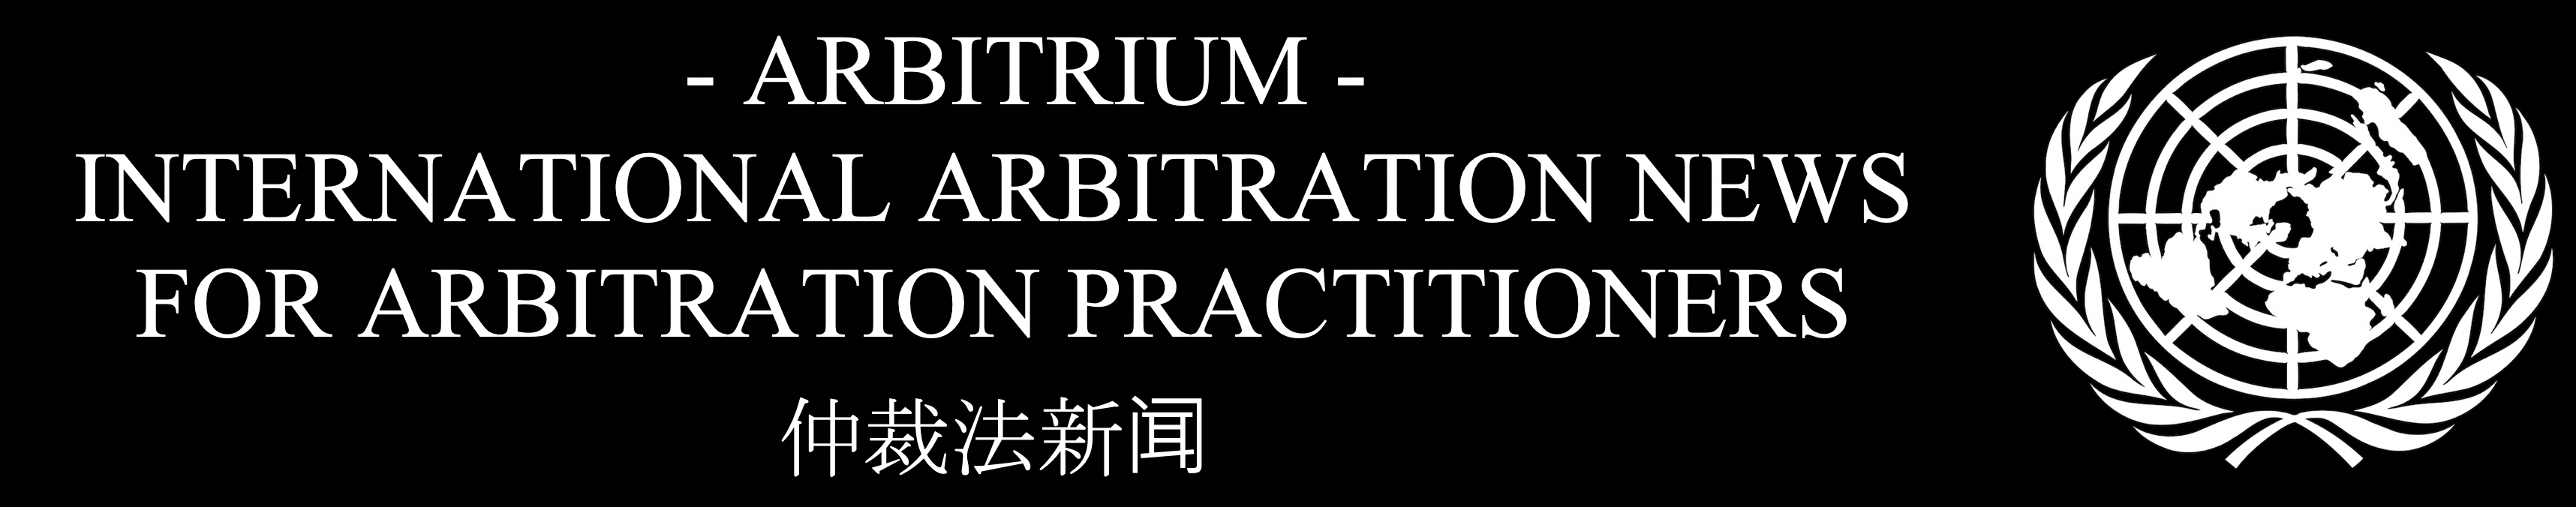 Arbitrium International Arbitration News